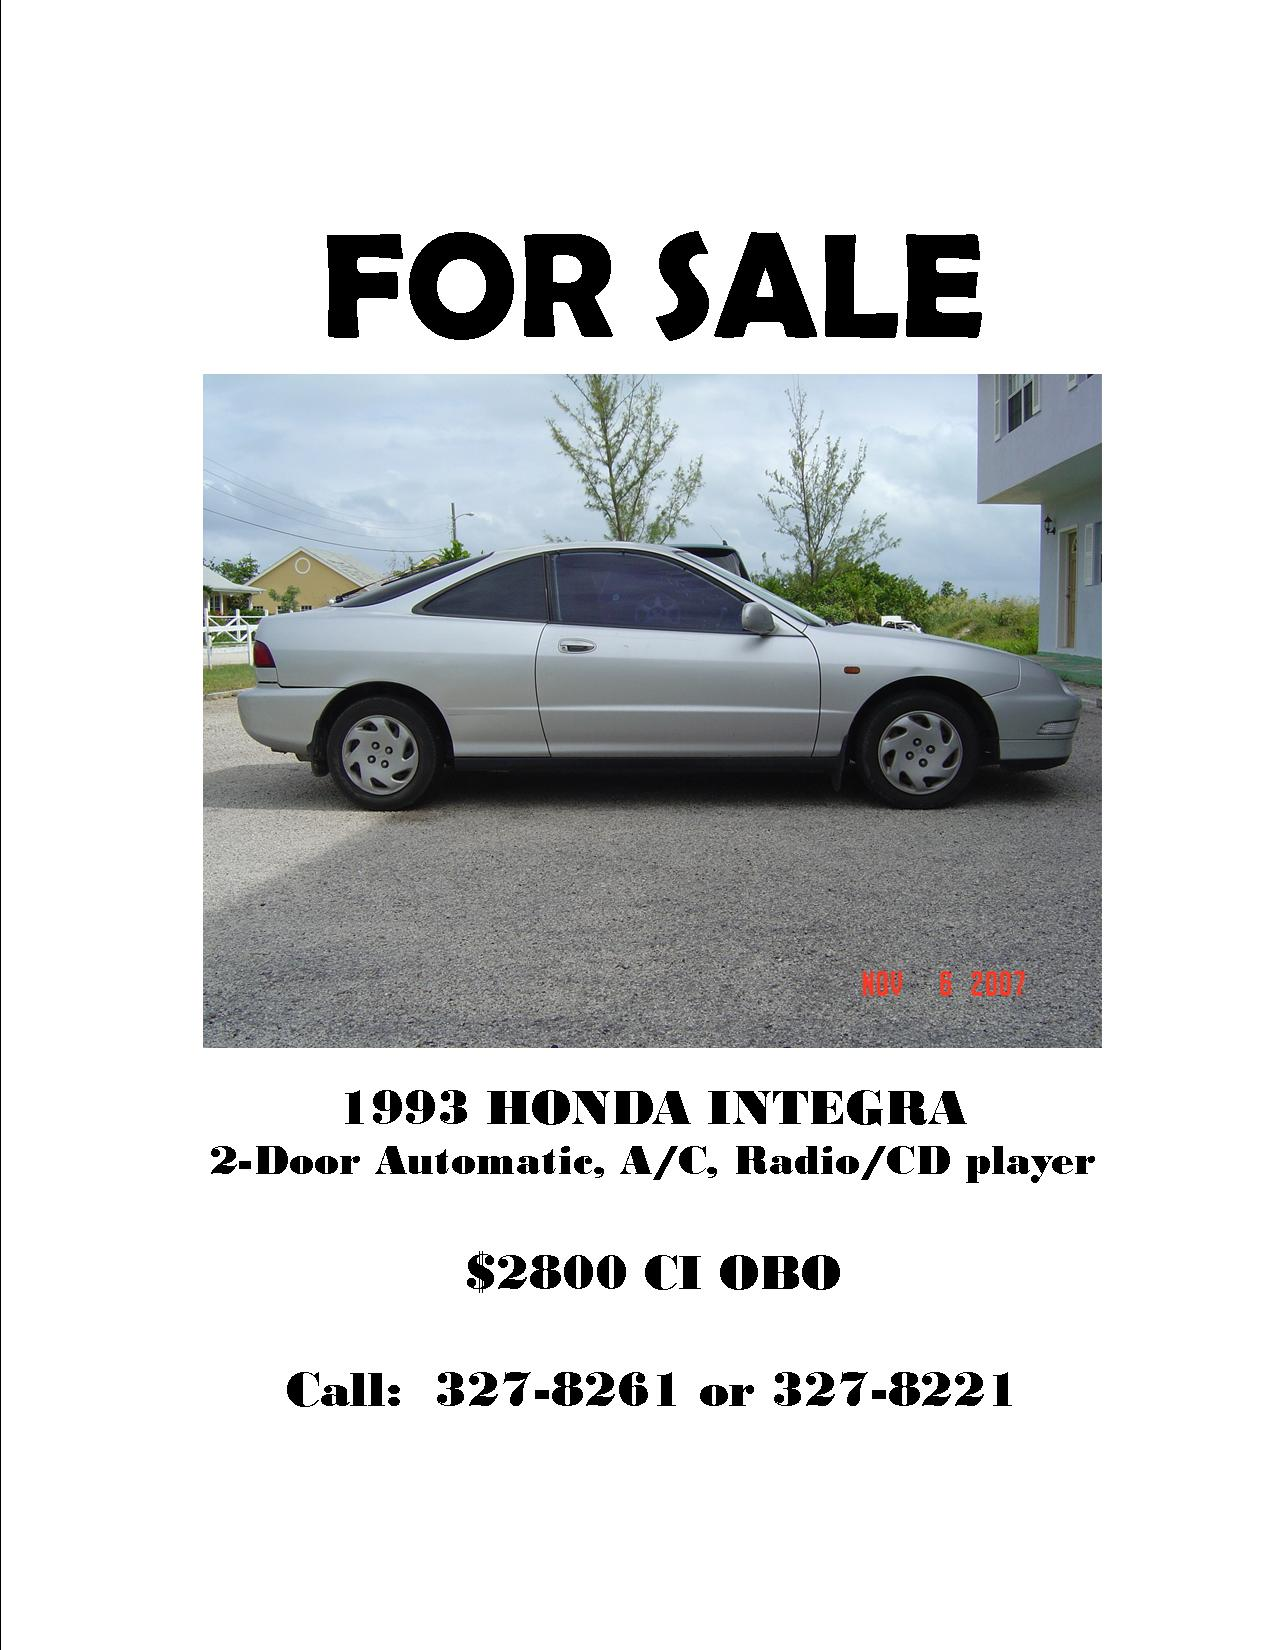 1993 honda integra for sale st matthews medical for Pictures for sale cheap